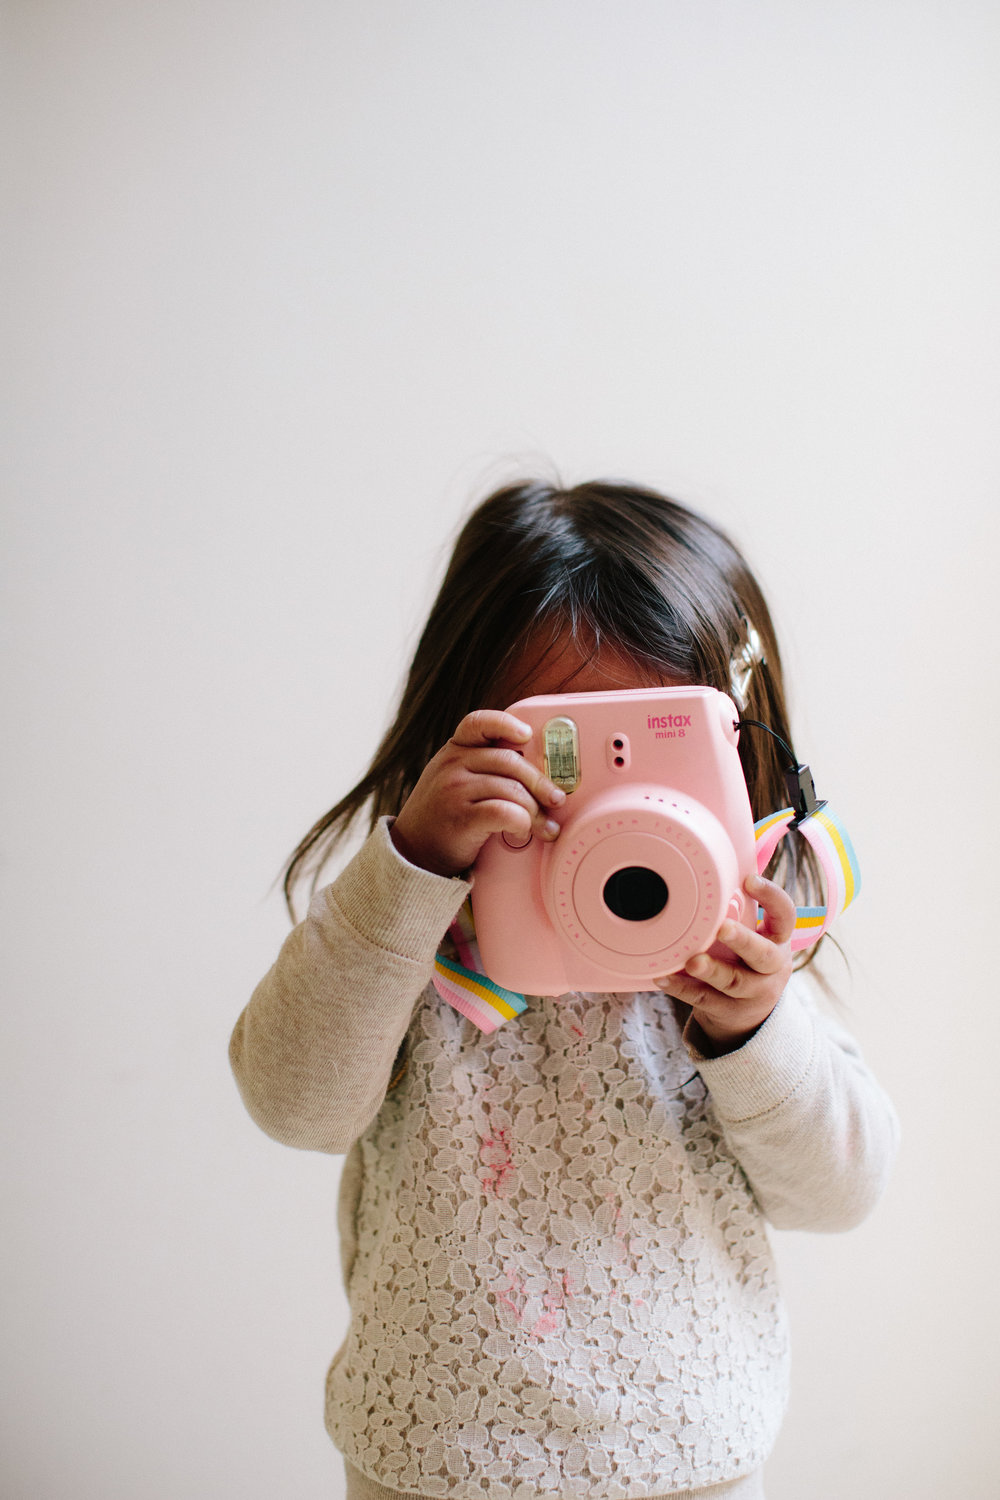 She loves to hold her camera and in this rare moment, is holding it correctly. She usually holds it with the lens facing upward and shoots tons of selfies.